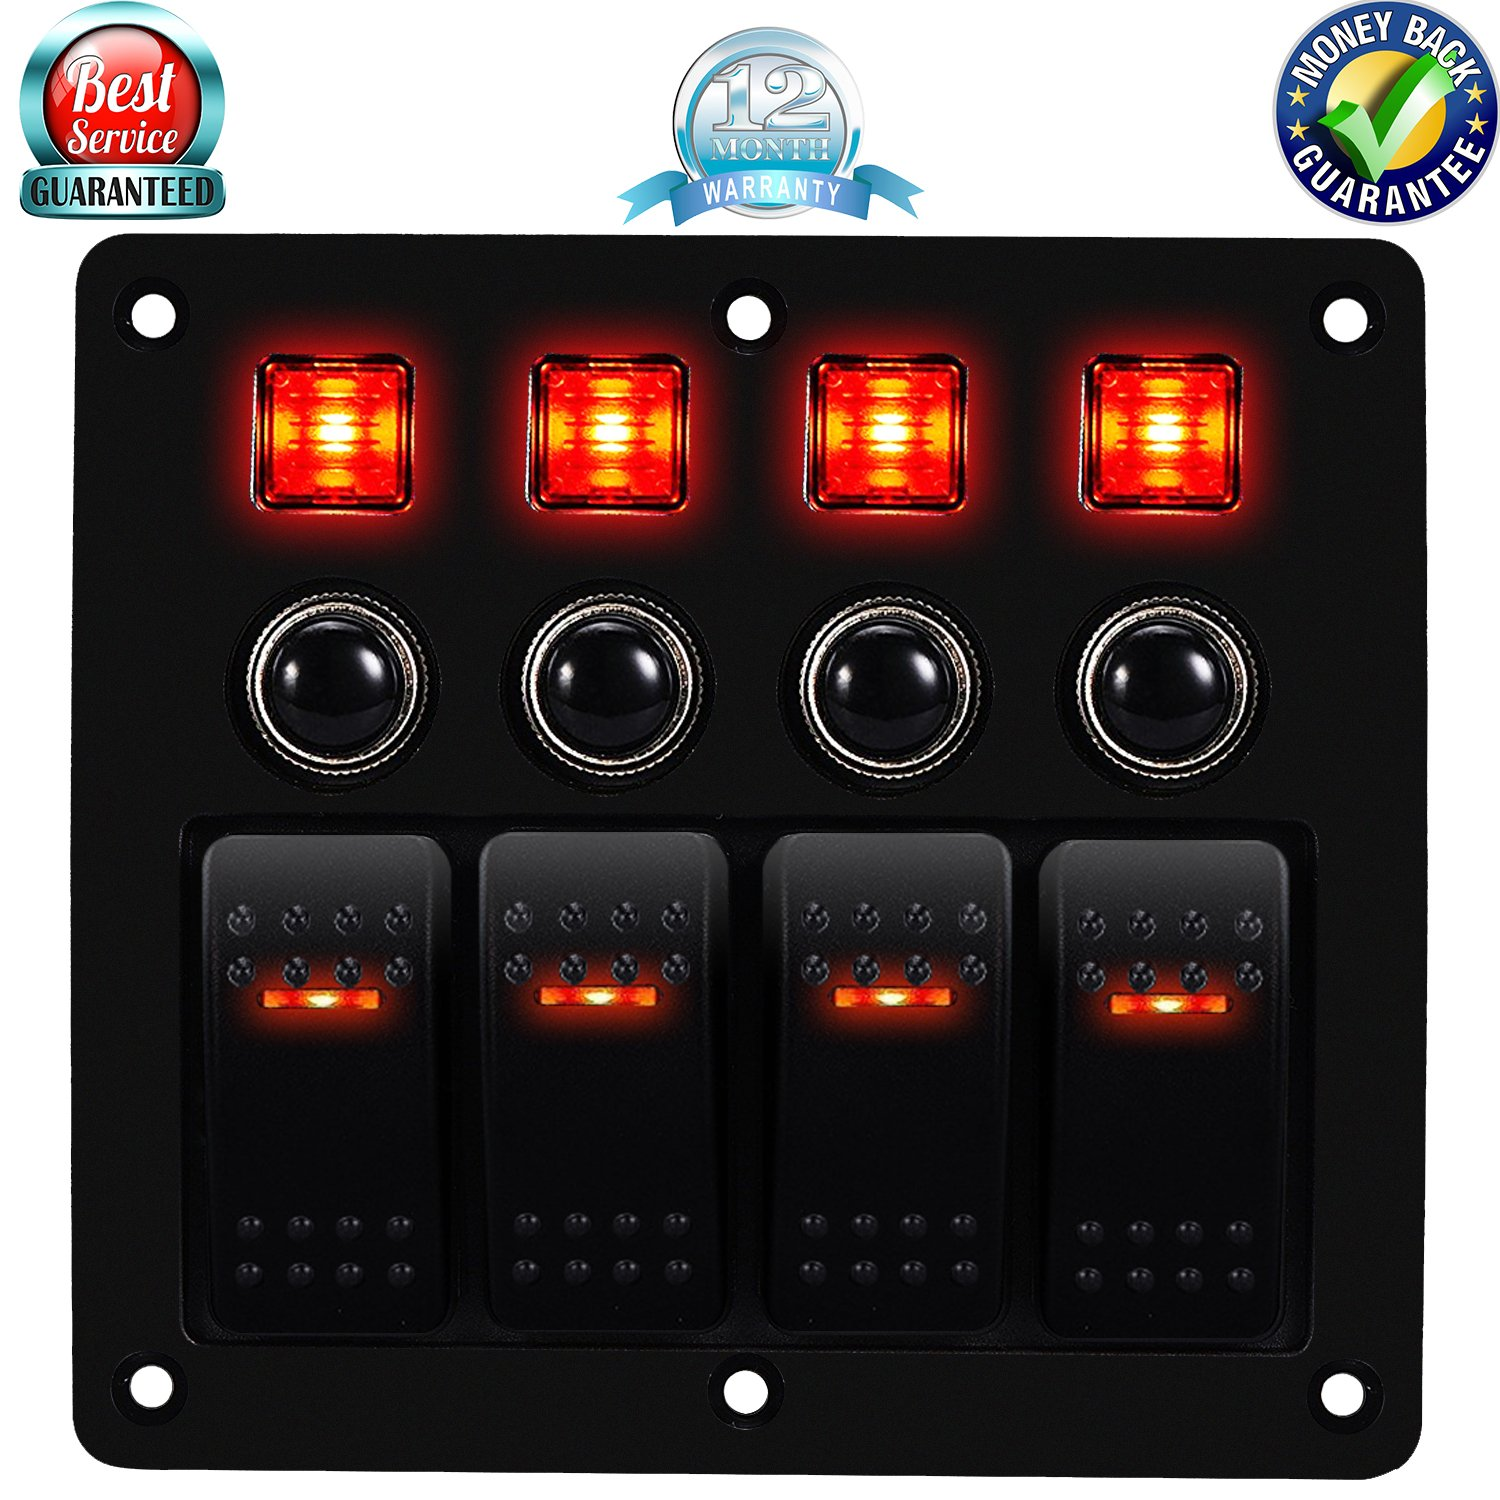 DCFlat 3 Gang Rocker Switch Panel with Power Socket 3.1A Dual USB Wiring Kits and Decal Sticker Labels DC12V/24V for Marine Boat Car Rv Vehicles Truck Blue Led